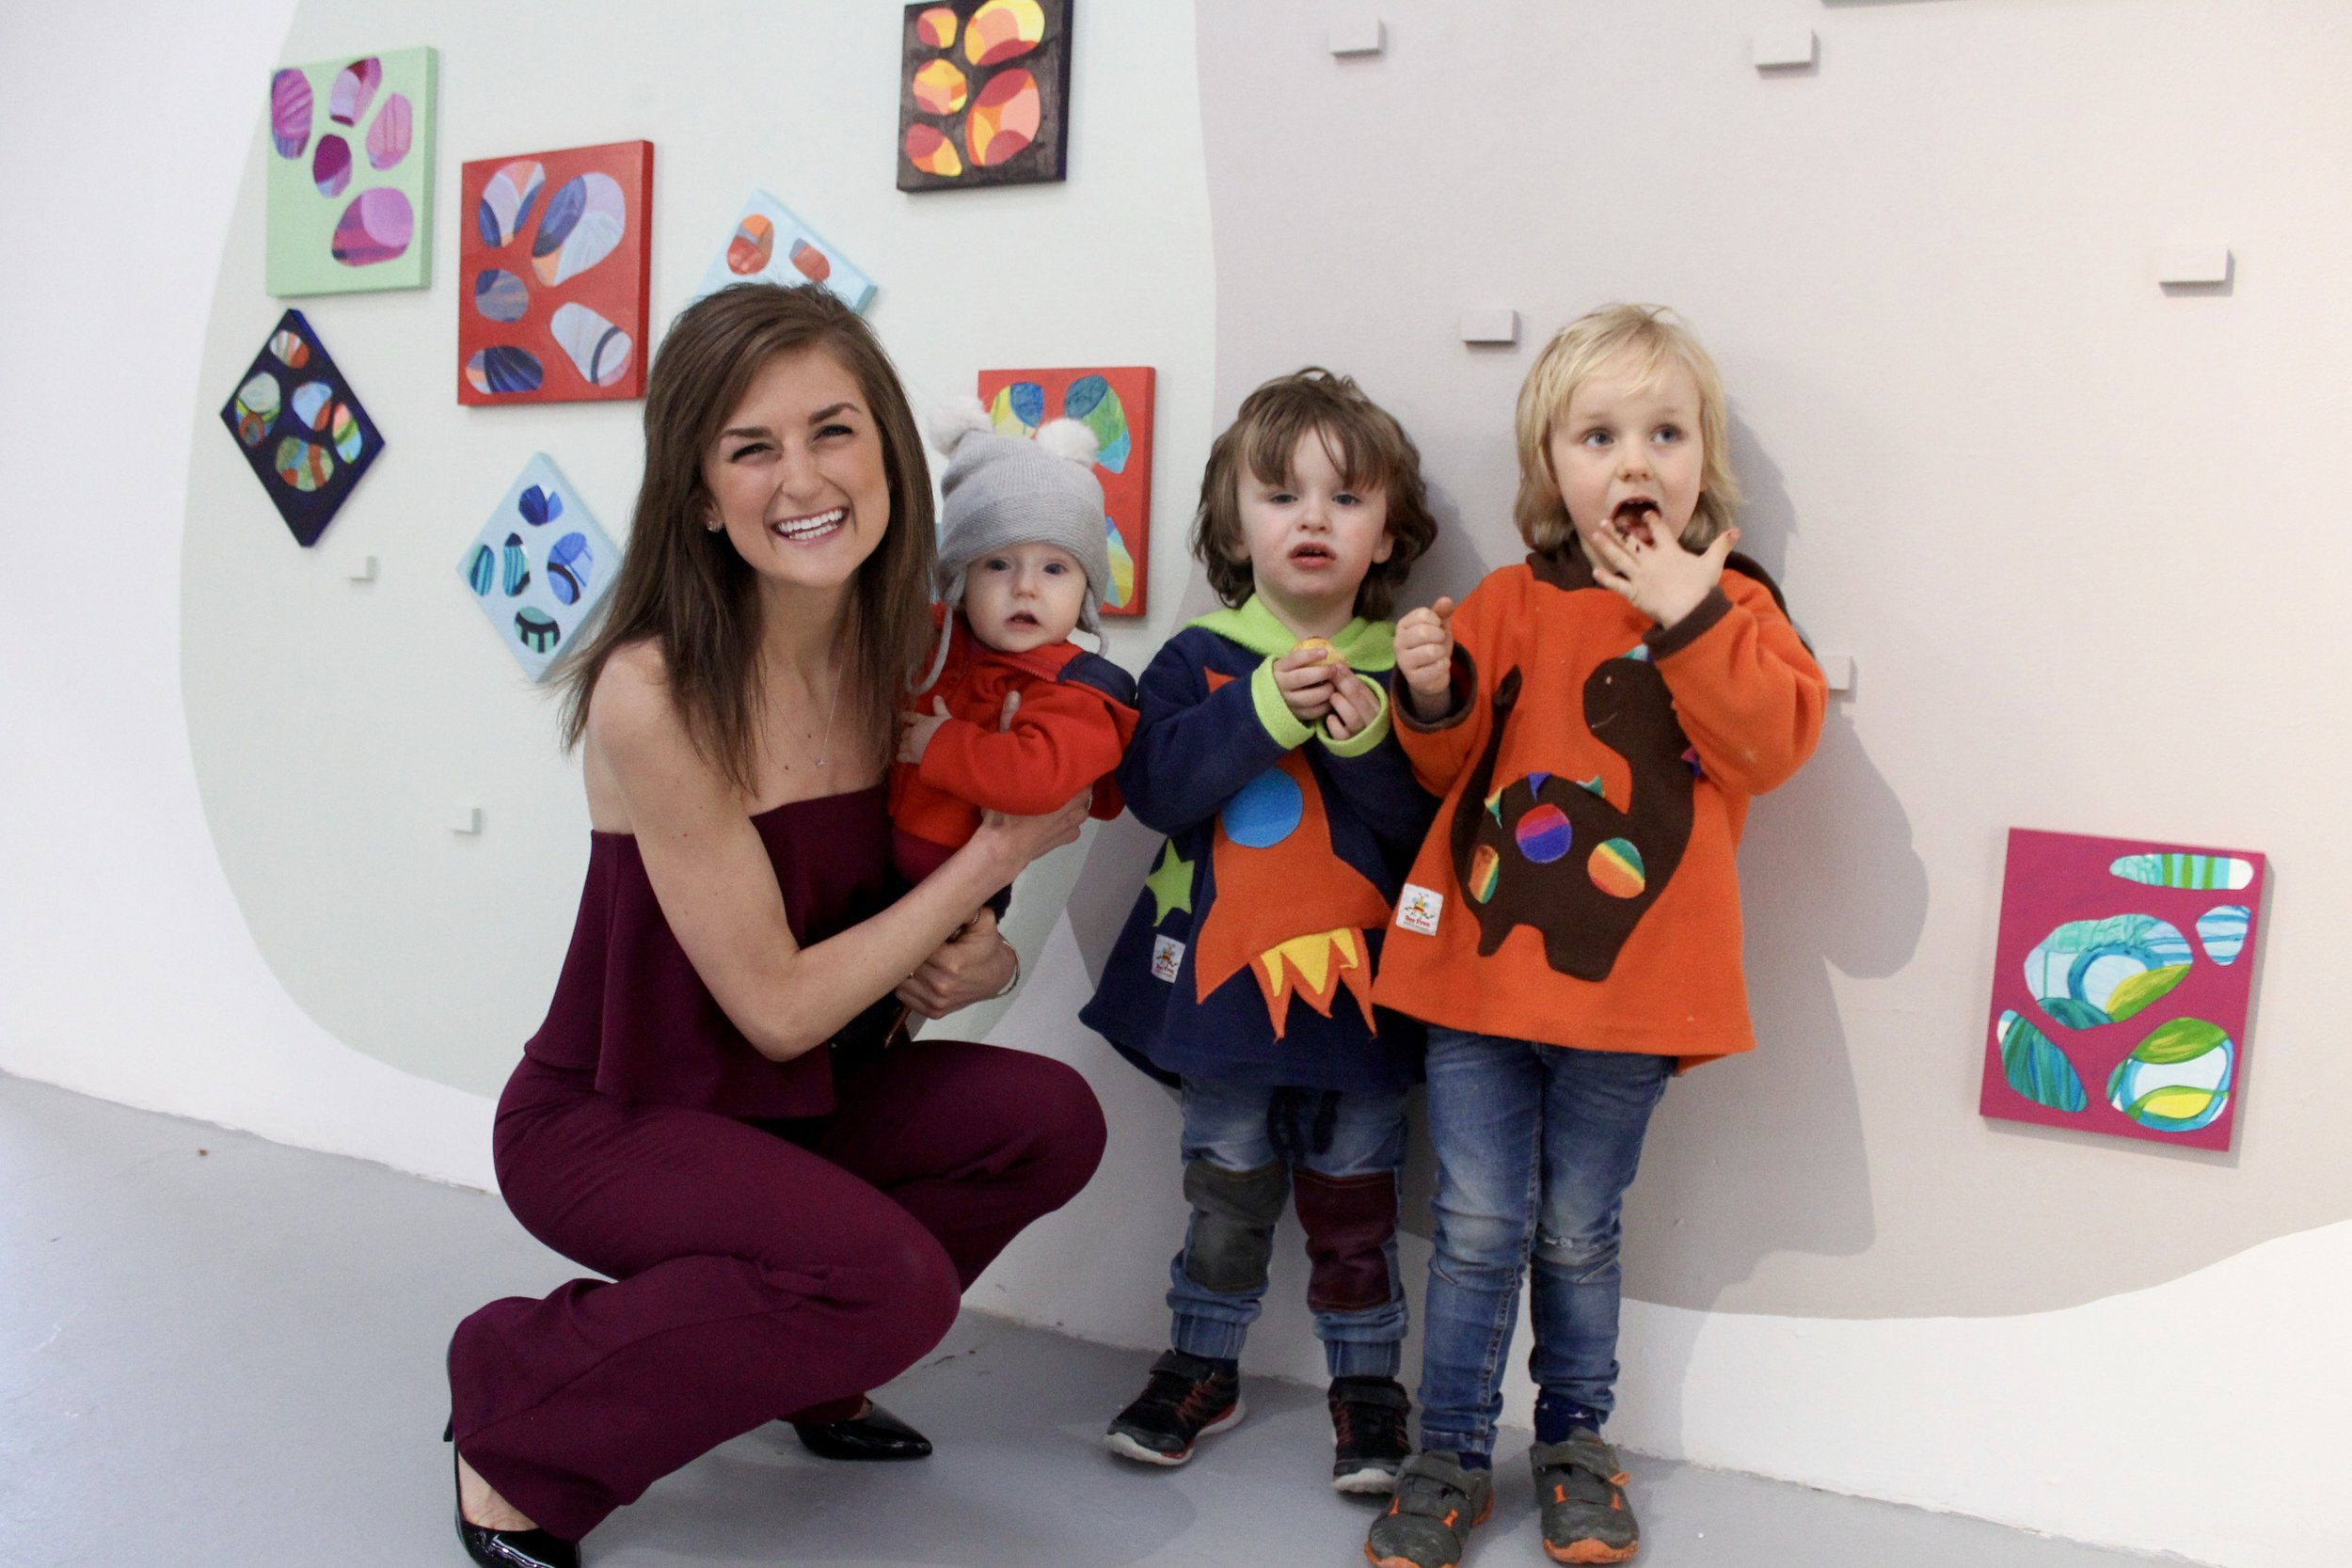 At the exhibition opening of  Periphery  with some of my favorite little people!